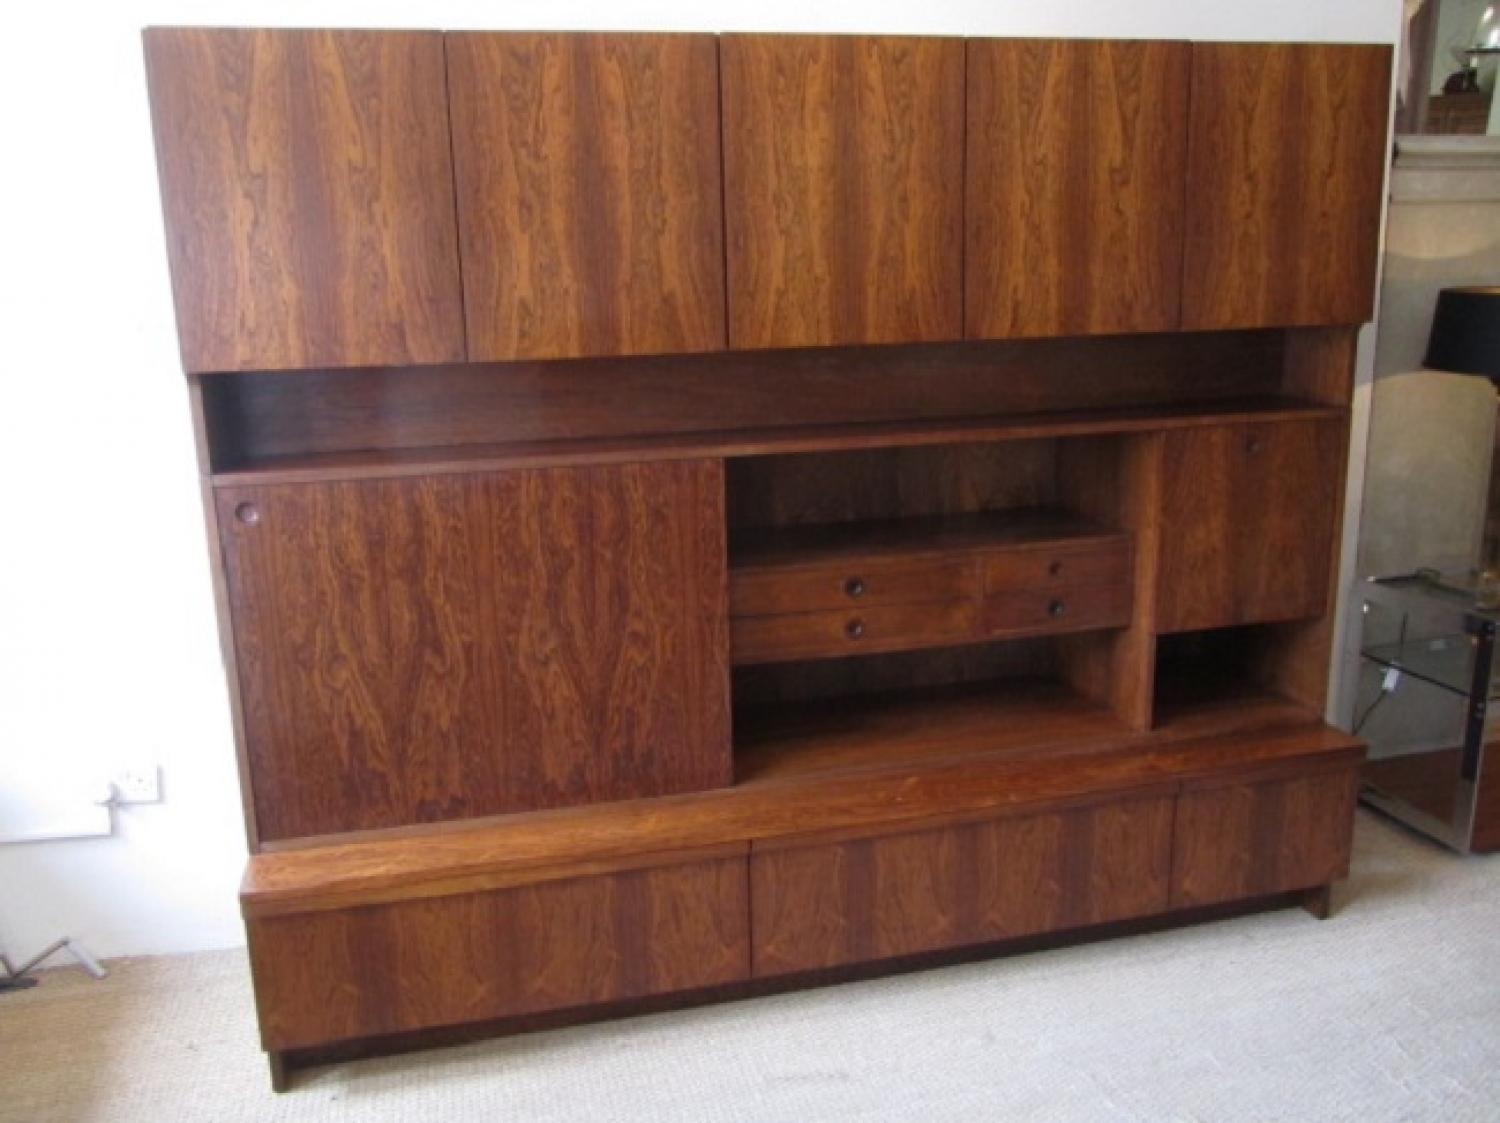 A rosewood bookcase cabinet